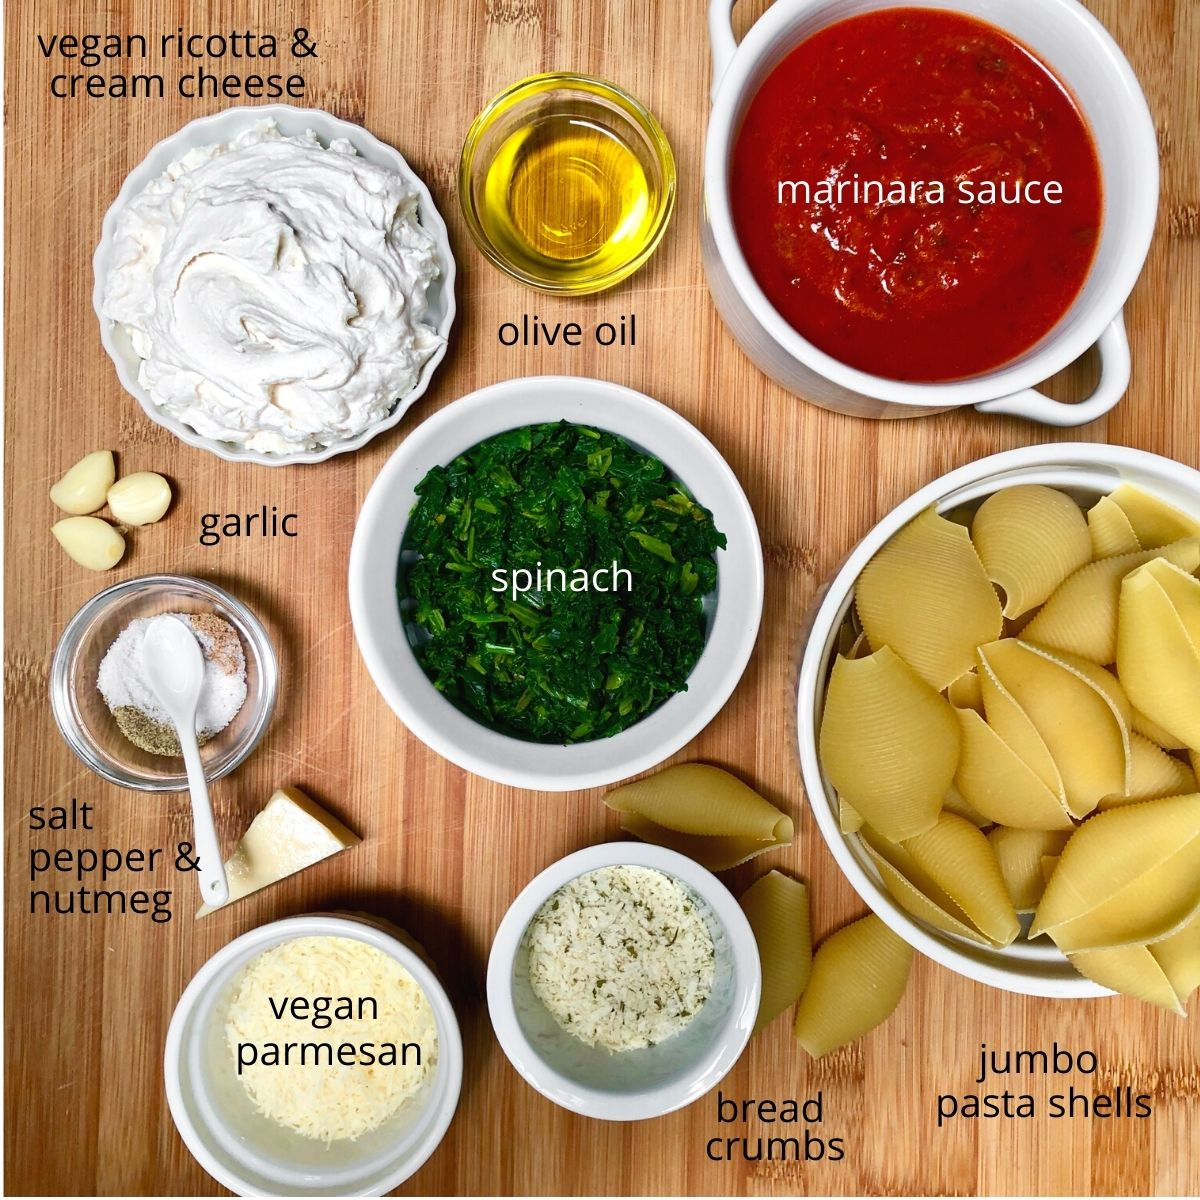 Ingredients for vegan spinach ricotta stuffed shells.